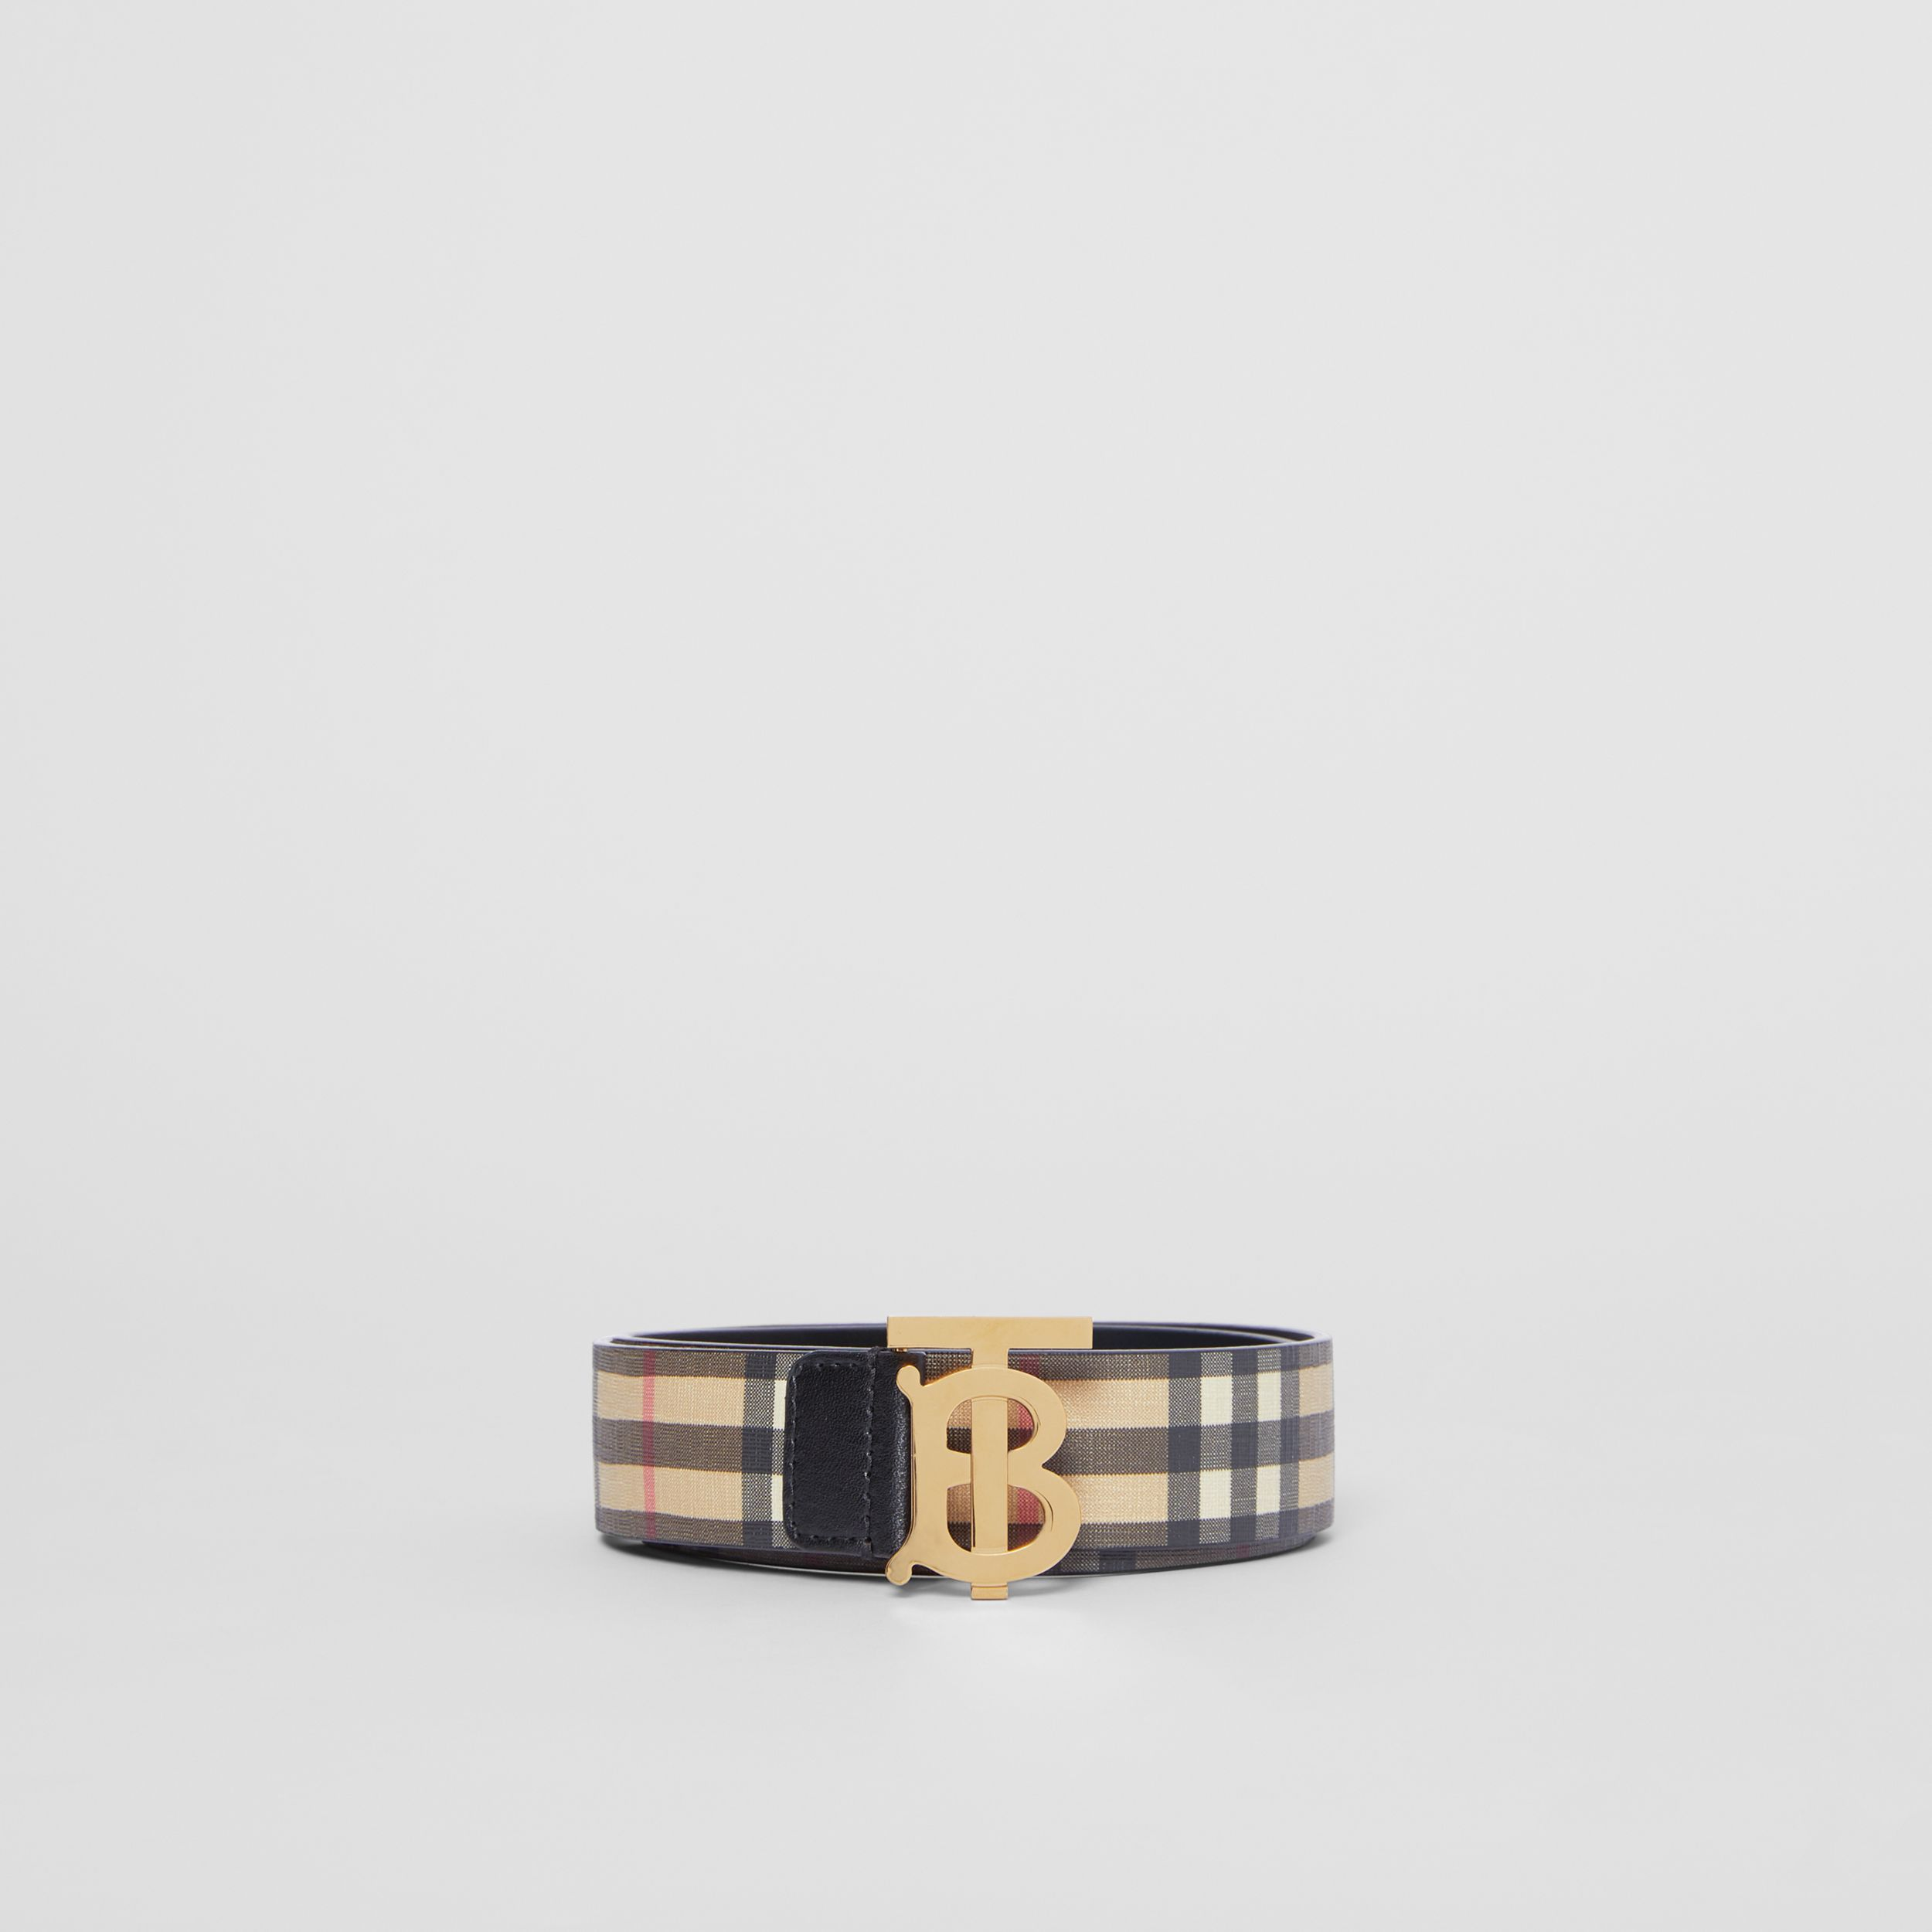 Monogram Motif Vintage Check E-canvas Belt in Archive Beige - Women | Burberry United States - 4